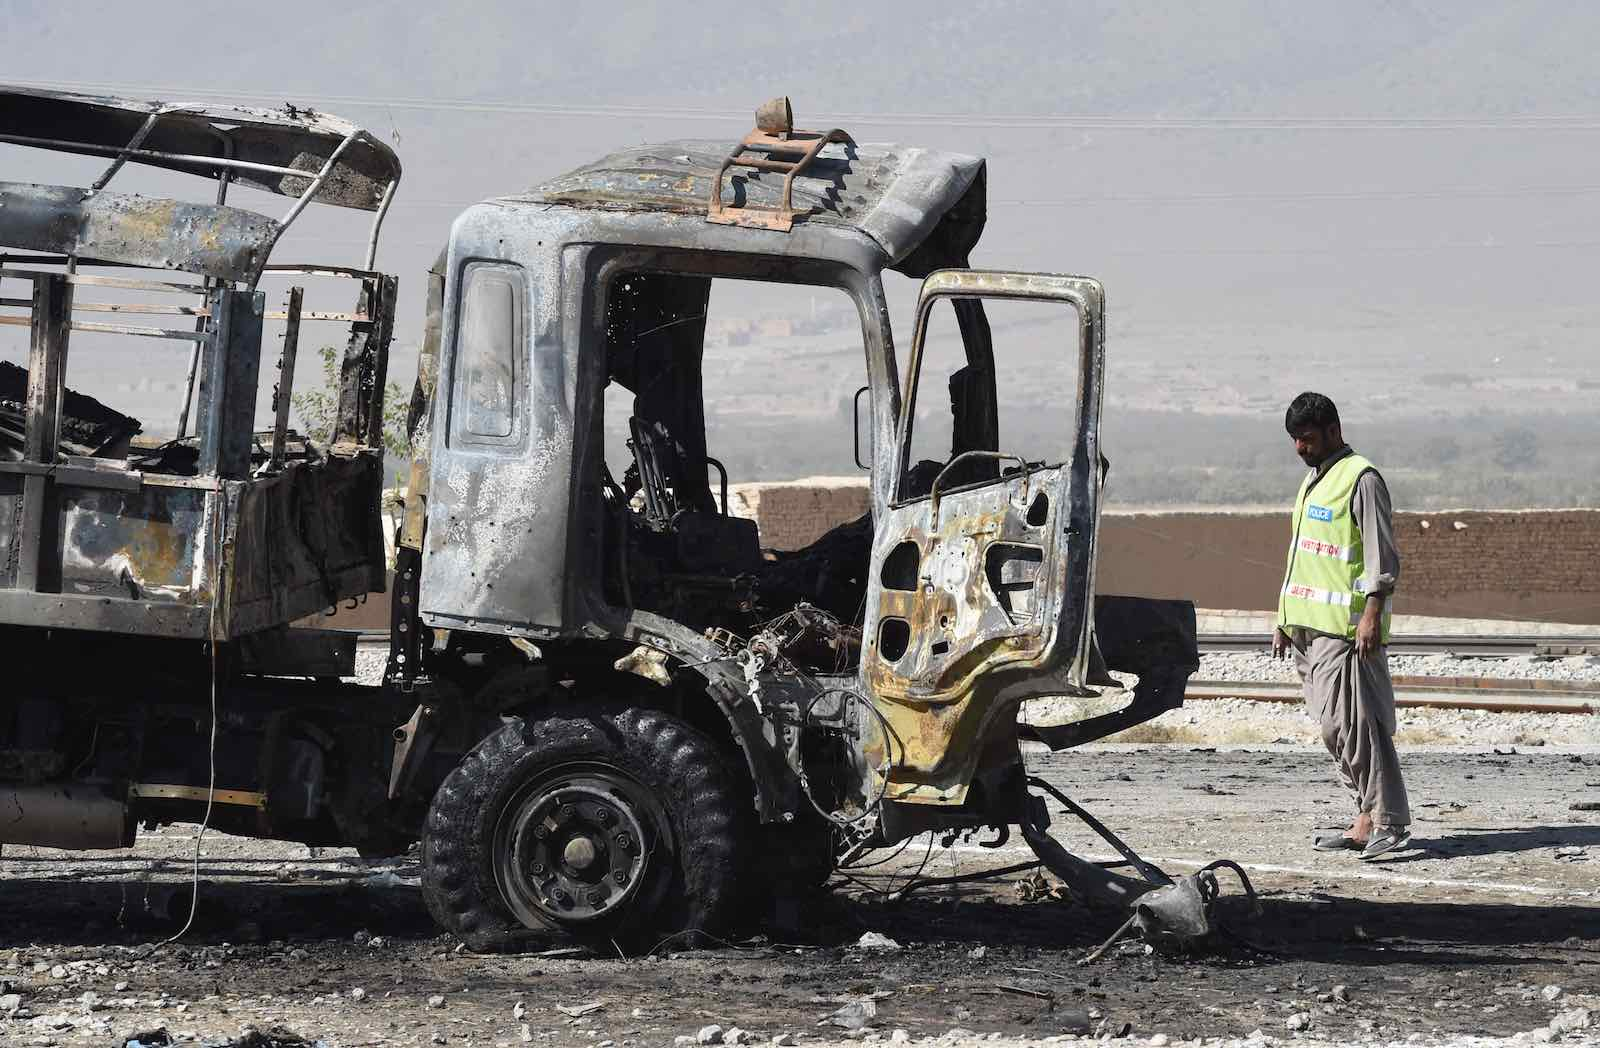 Tehreek-e-Taliban Pakistan claimed responsibility for a suicide blast near Quetta, in Pakistan's Balochistan province, 18 October 2017, in which 8 people were killed and 24 wounded (Photo: Banaras Khan/AFP/Getty)